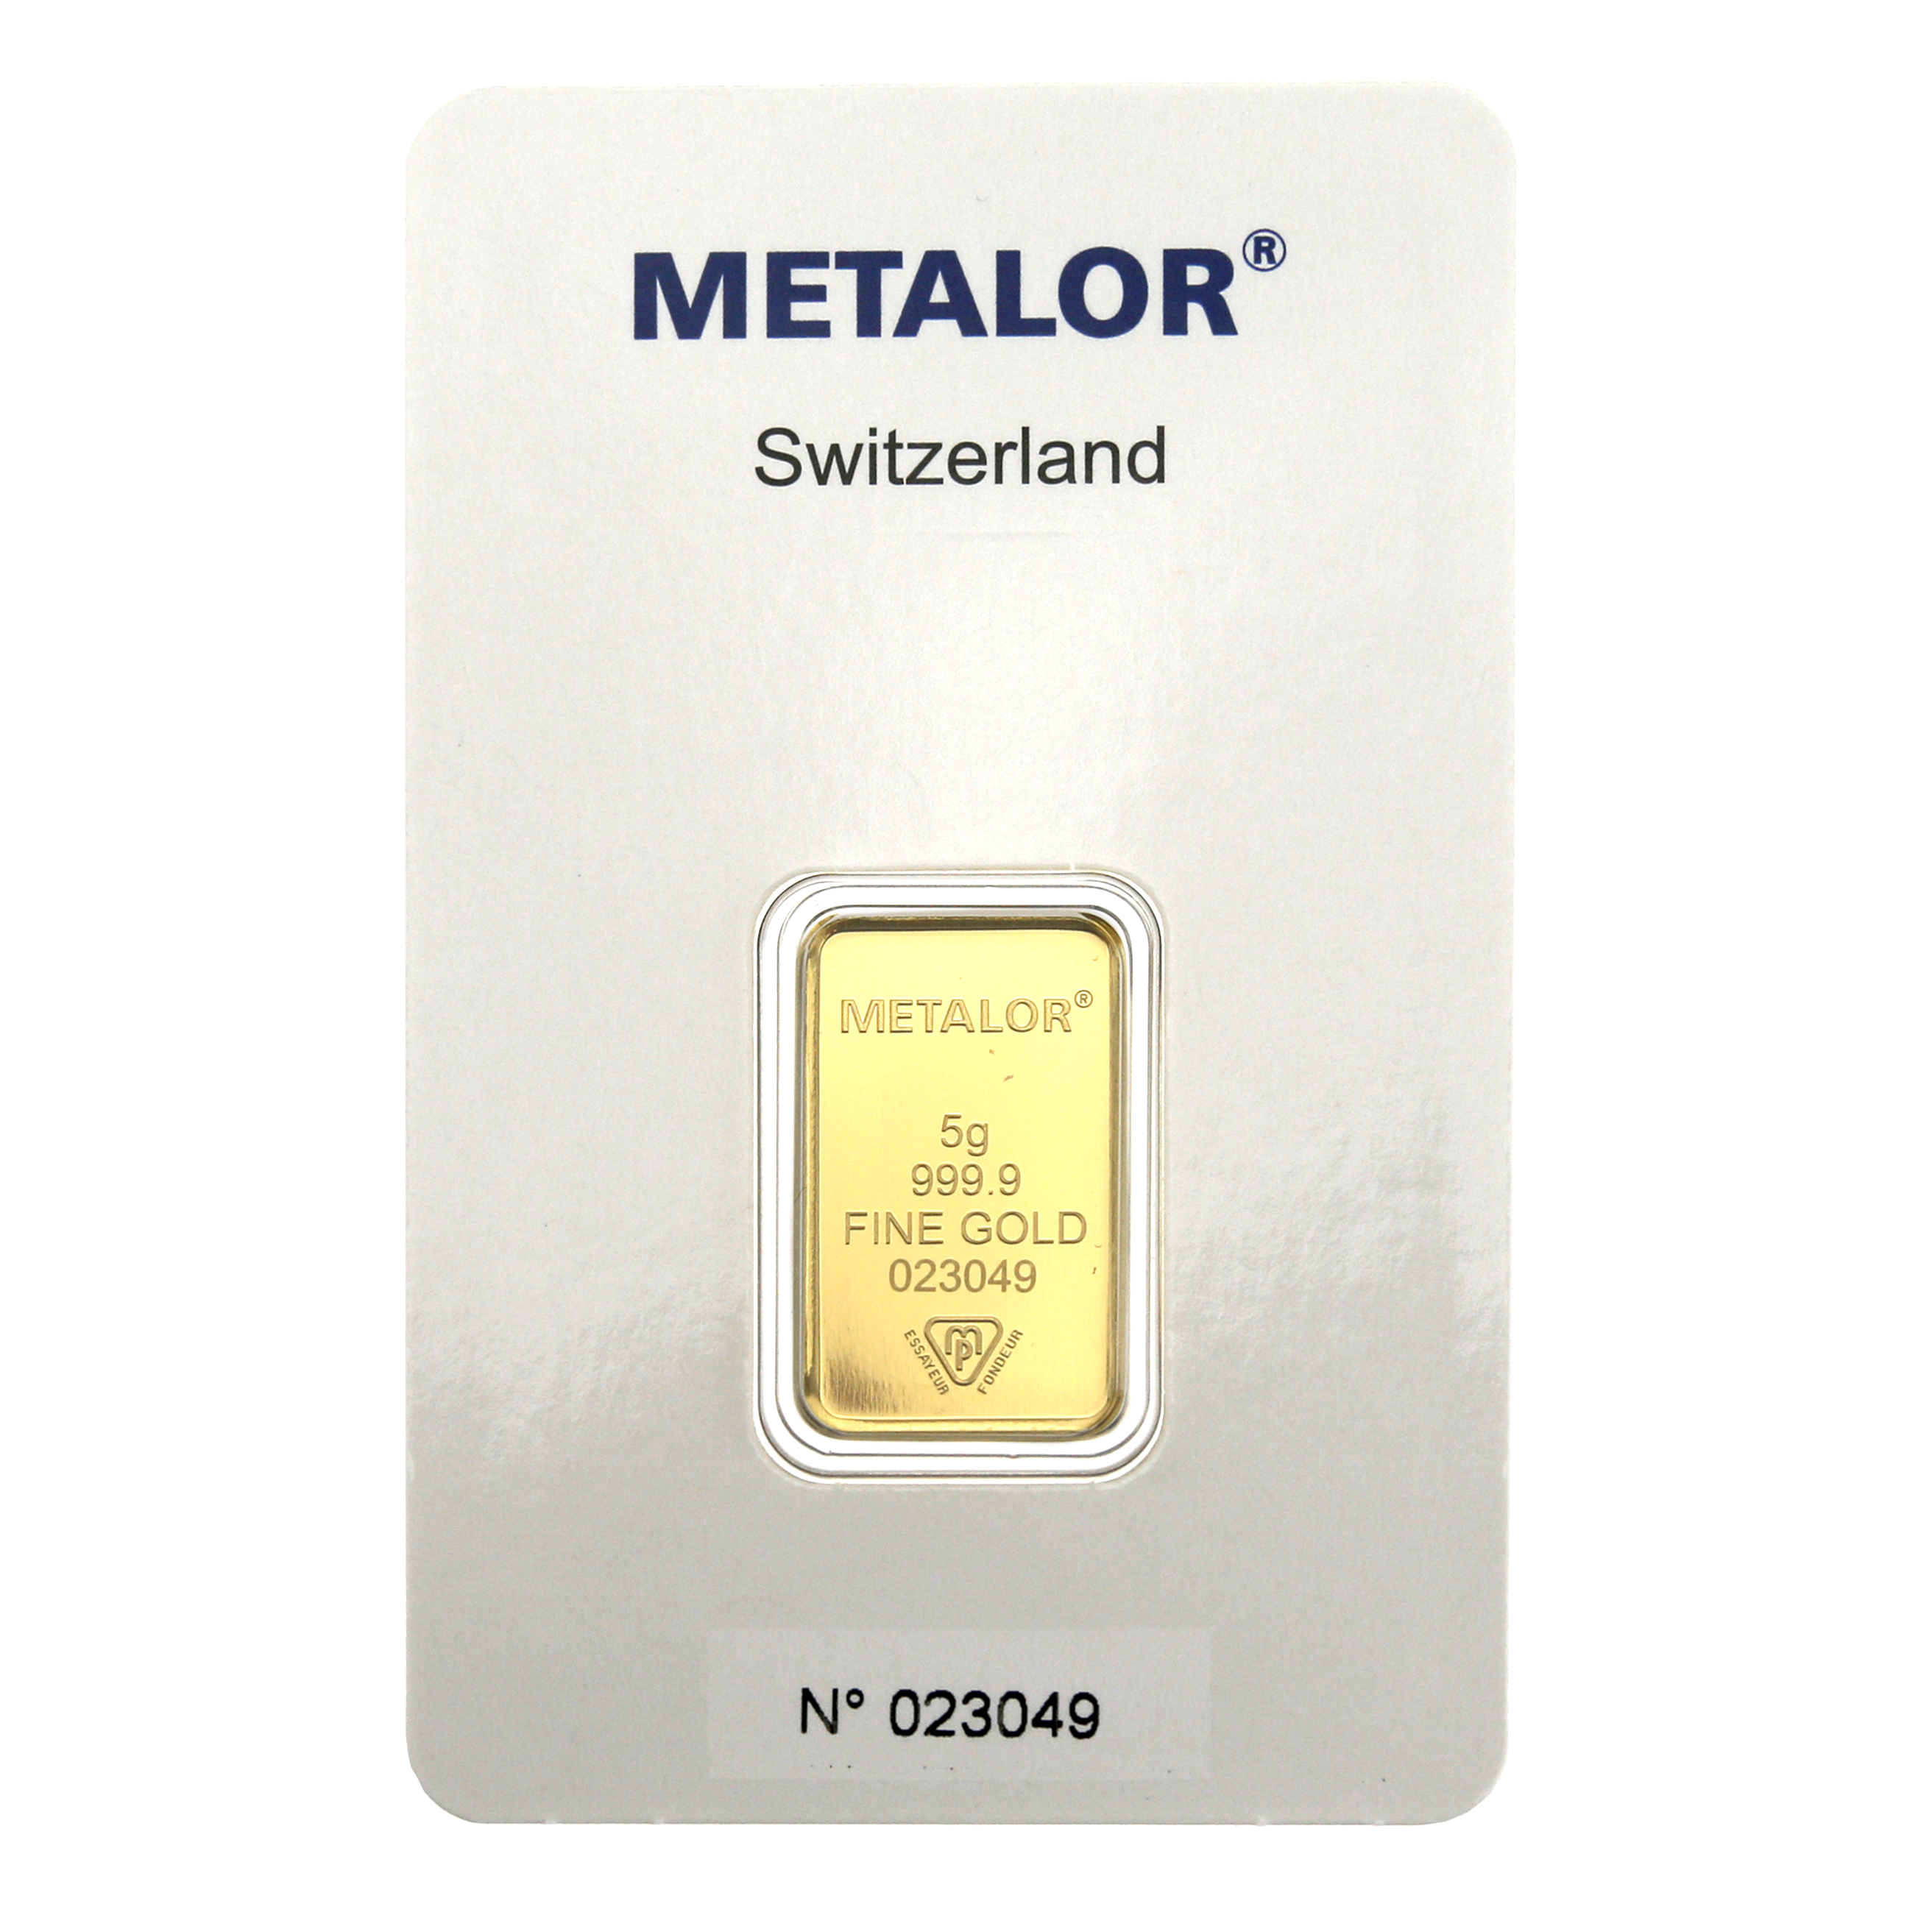 Metalor Stamped 5g Gold Bar